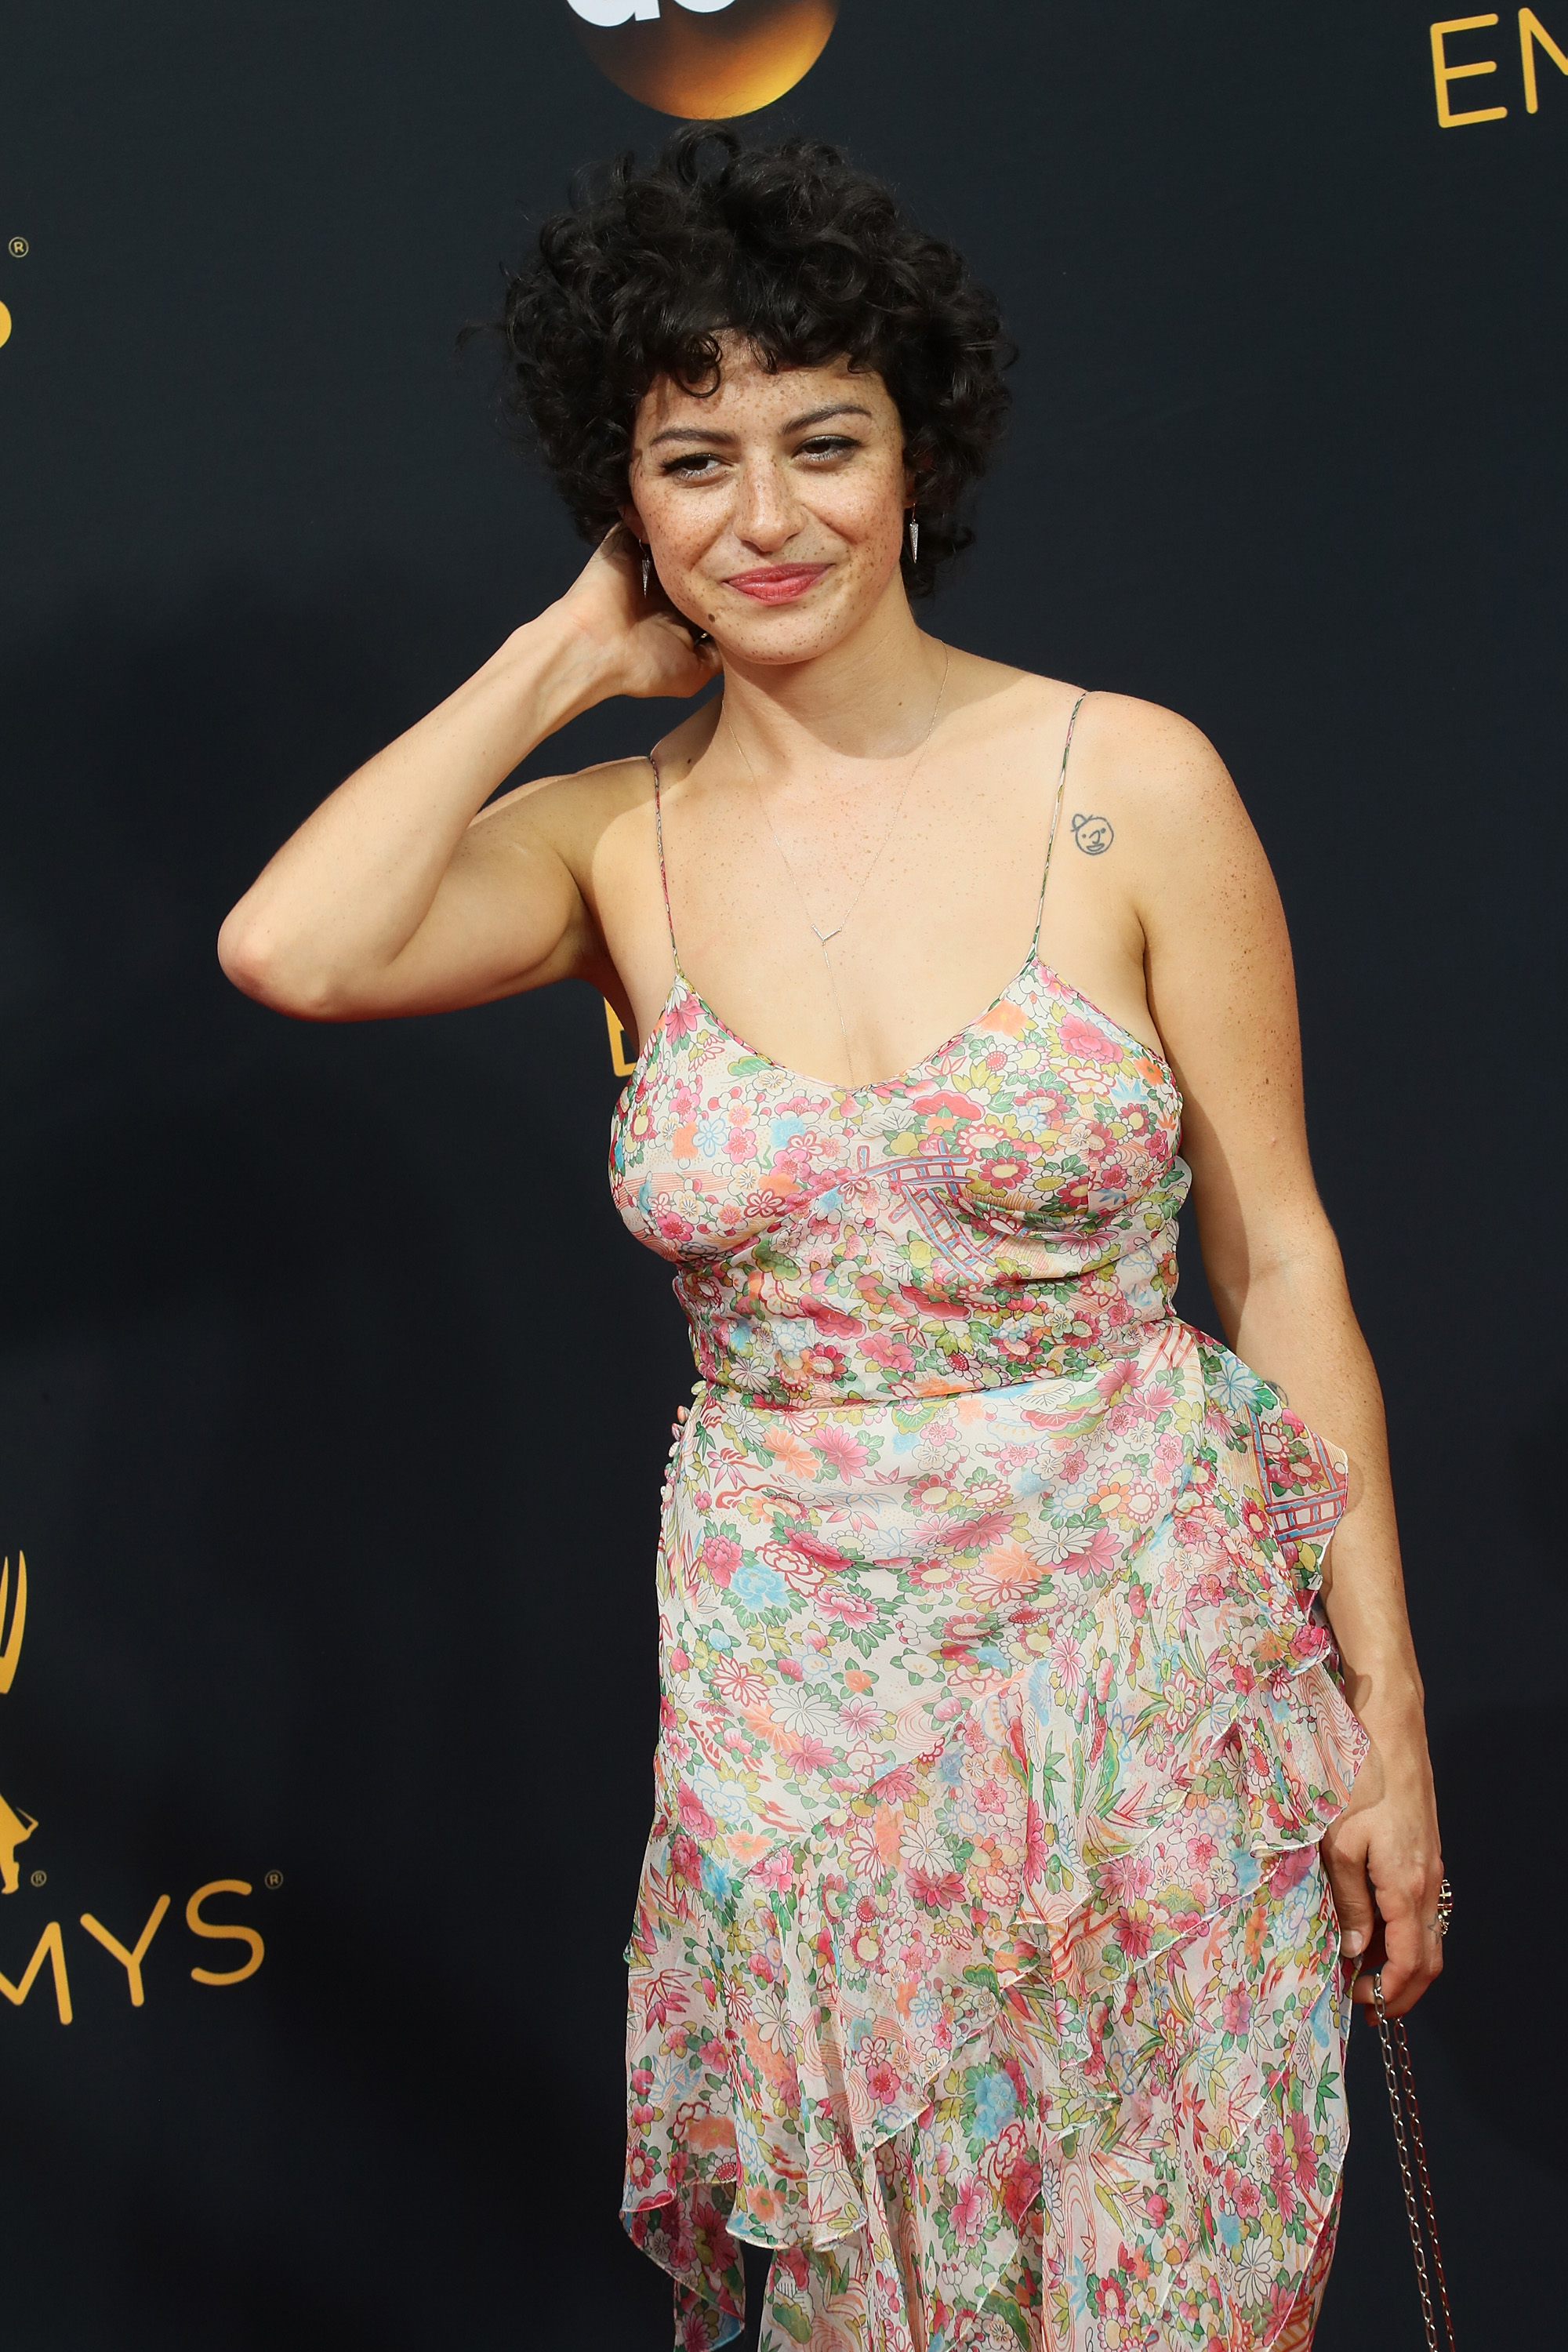 Actor Alia Shawkat arrives at the 68th Annual Primetime Emmy Awards on September 18, 2016 in Los Angeles, California. (Photo by David Livingston/Getty Images)